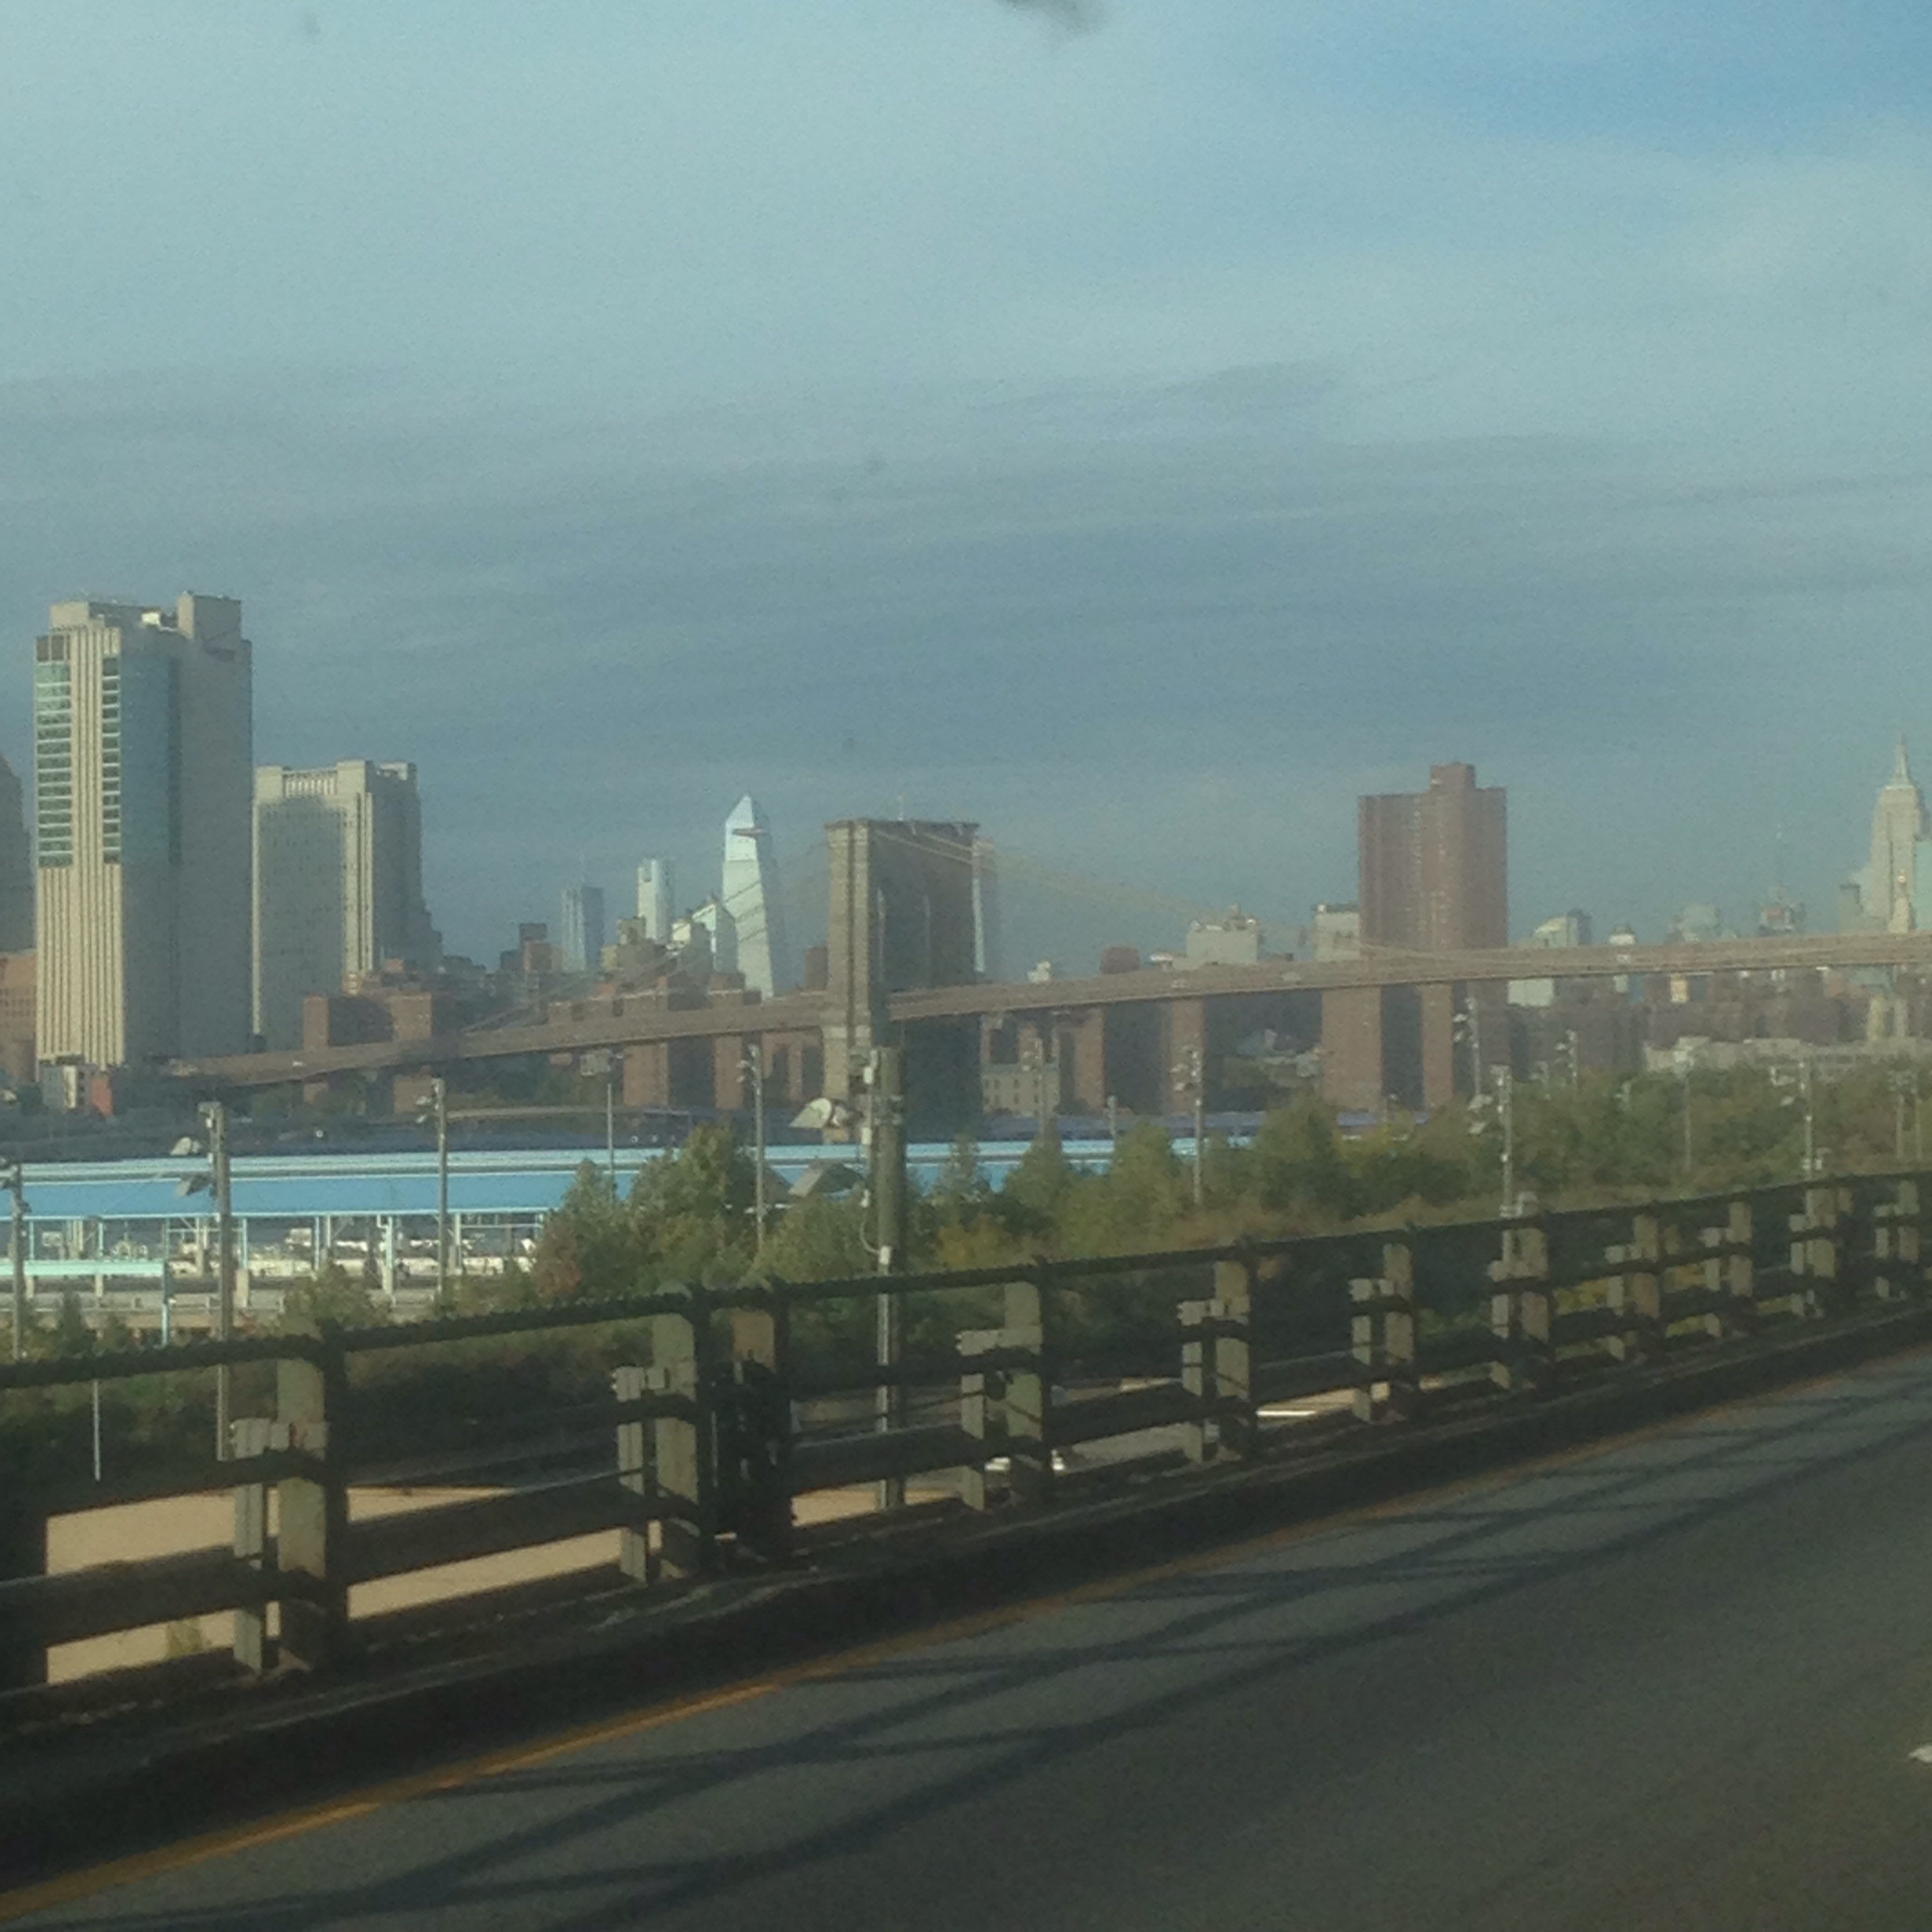 On the way into the city